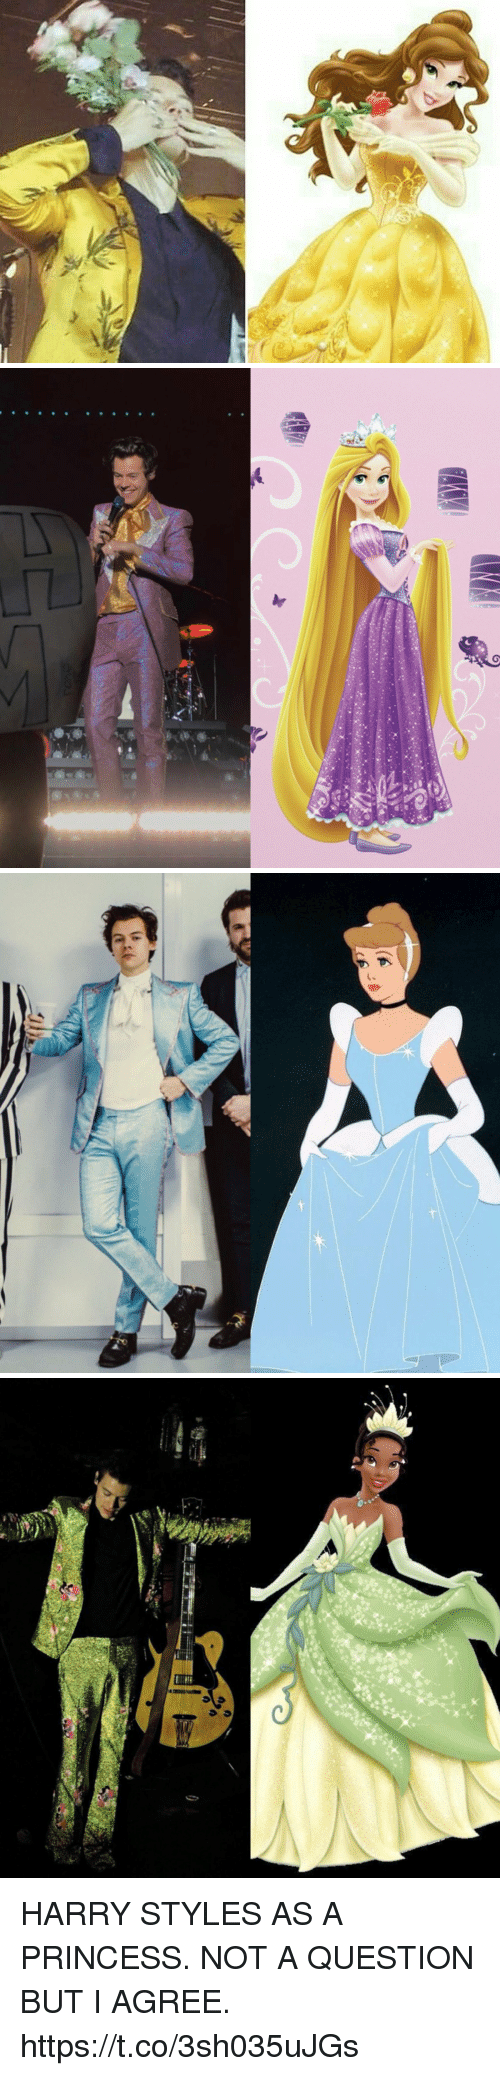 Harry Styles, Princess, and Girl Memes: HARRY STYLES AS A PRINCESS. NOT A QUESTION BUT I AGREE. https://t.co/3sh035uJGs